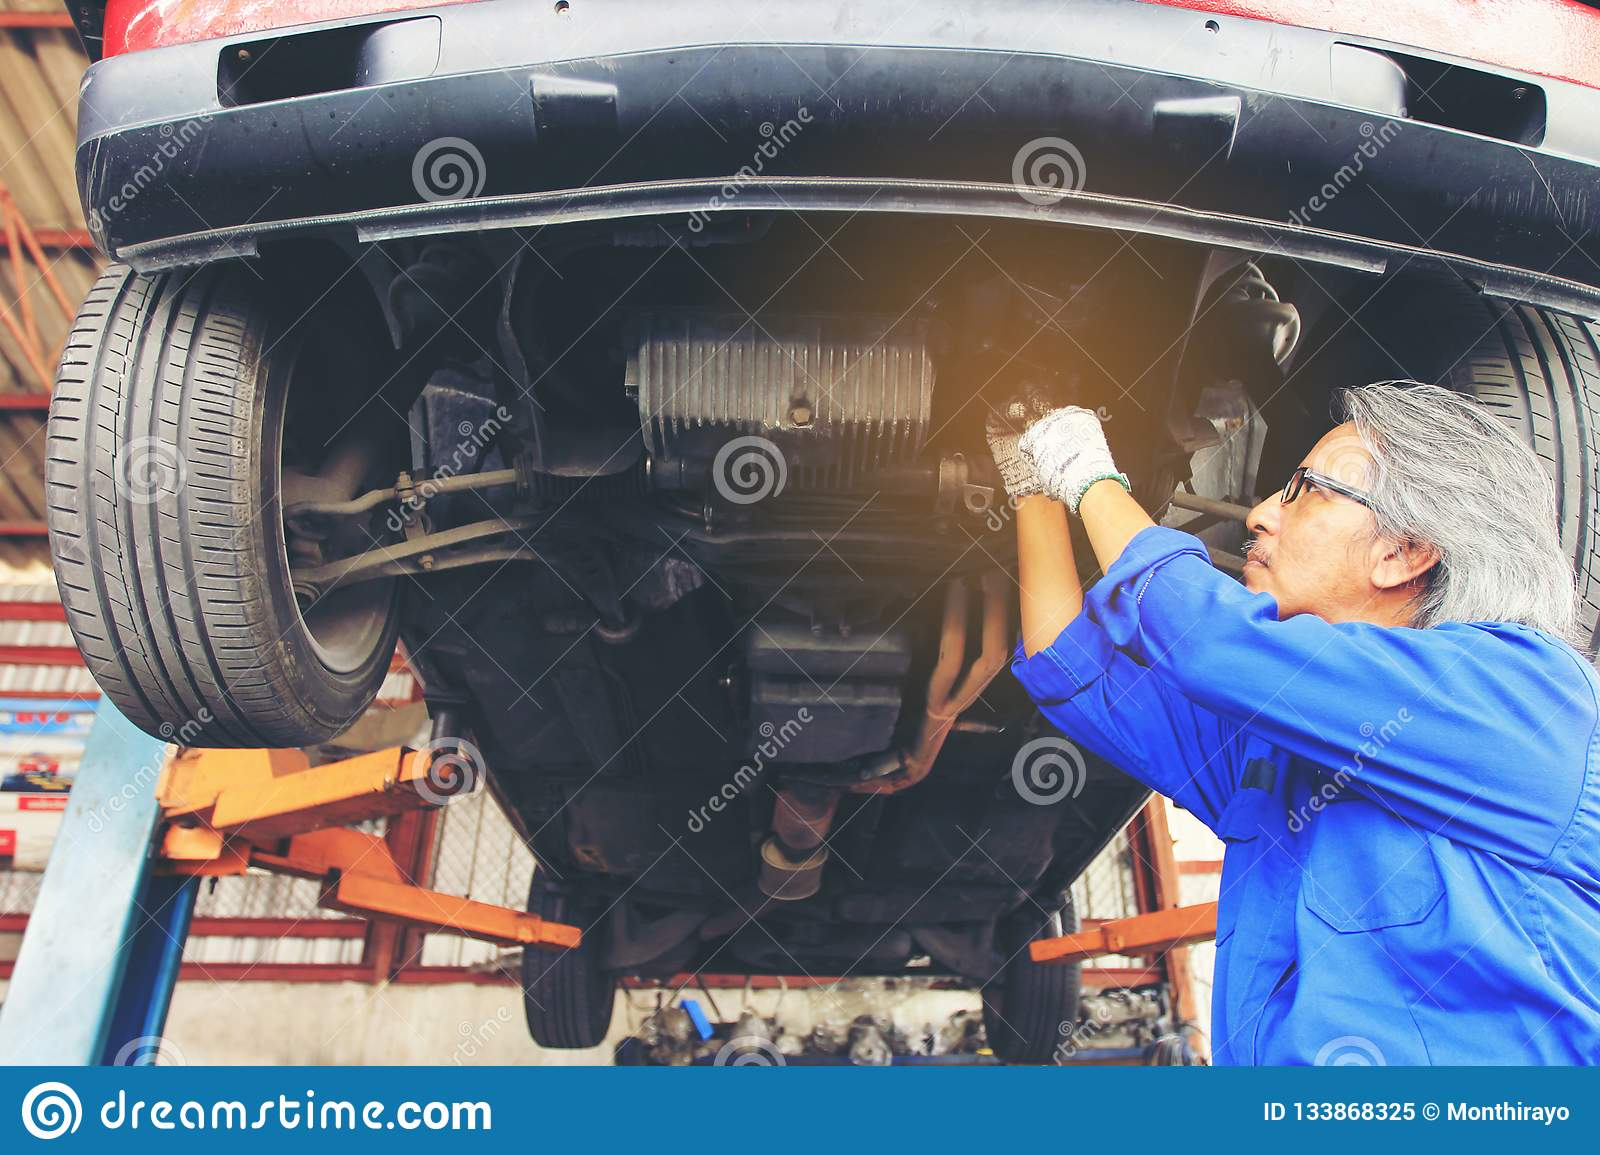 Close-up of car mechanic working under car in auto repair service.